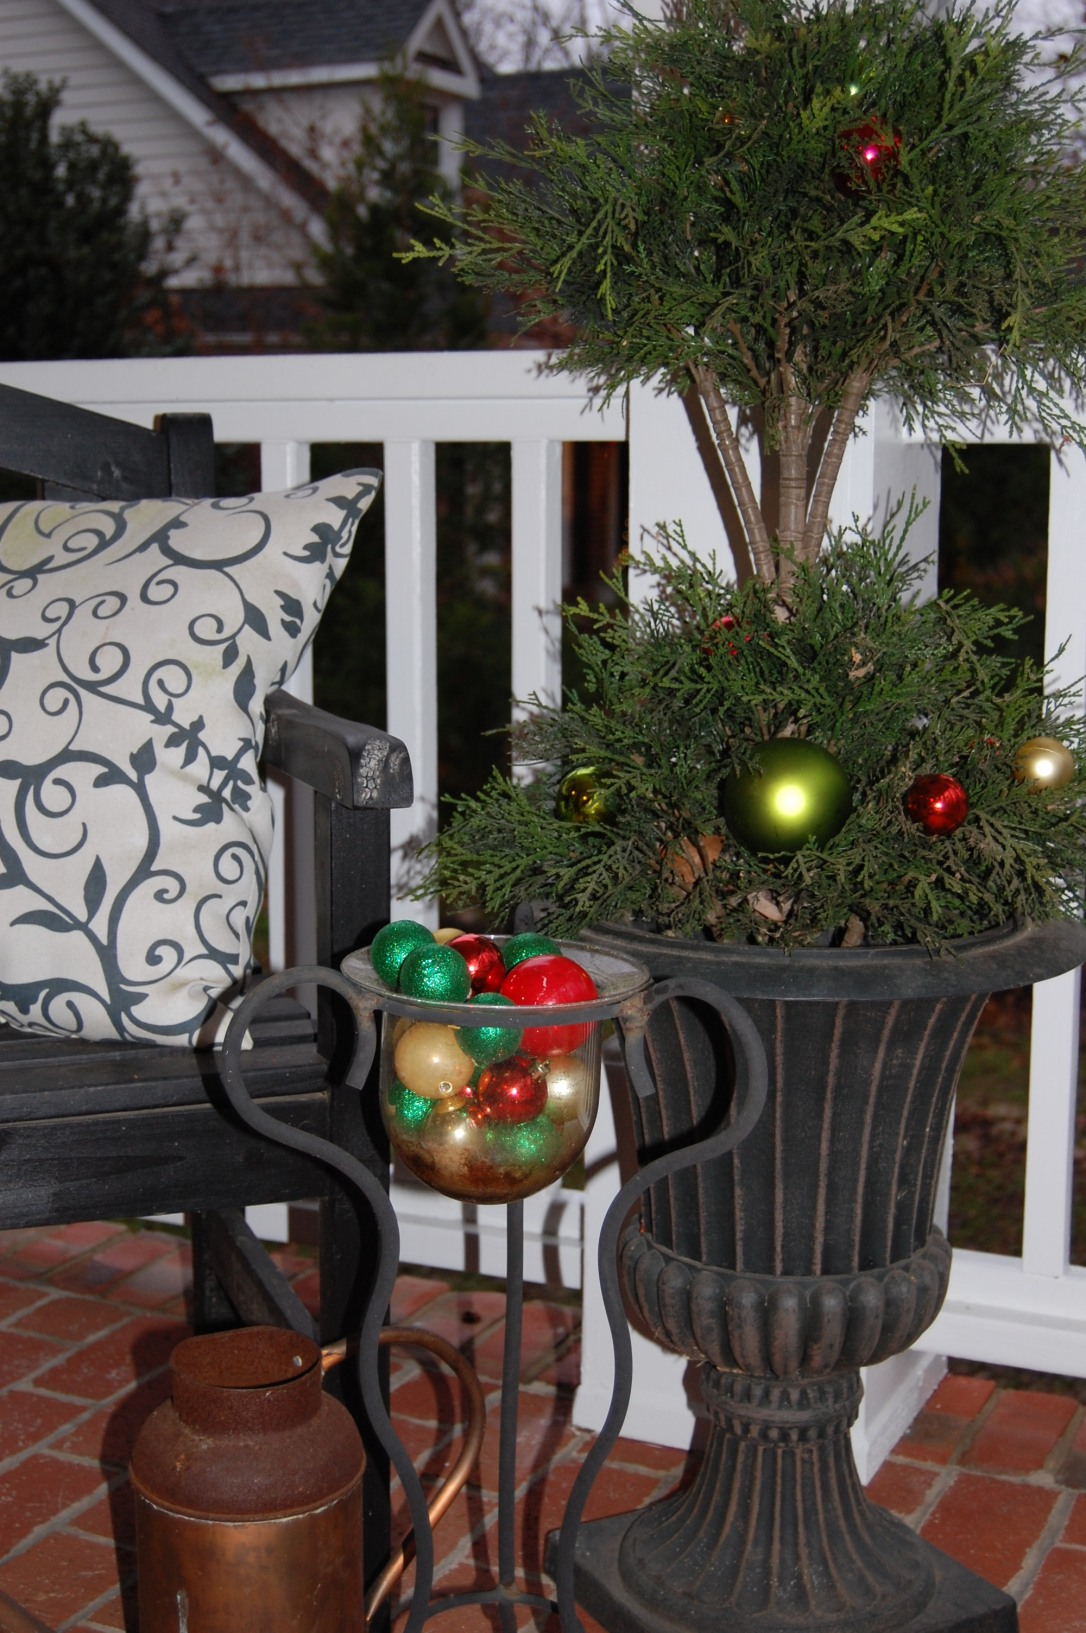 Porch2-Classic Tassels Christmas Home Tour